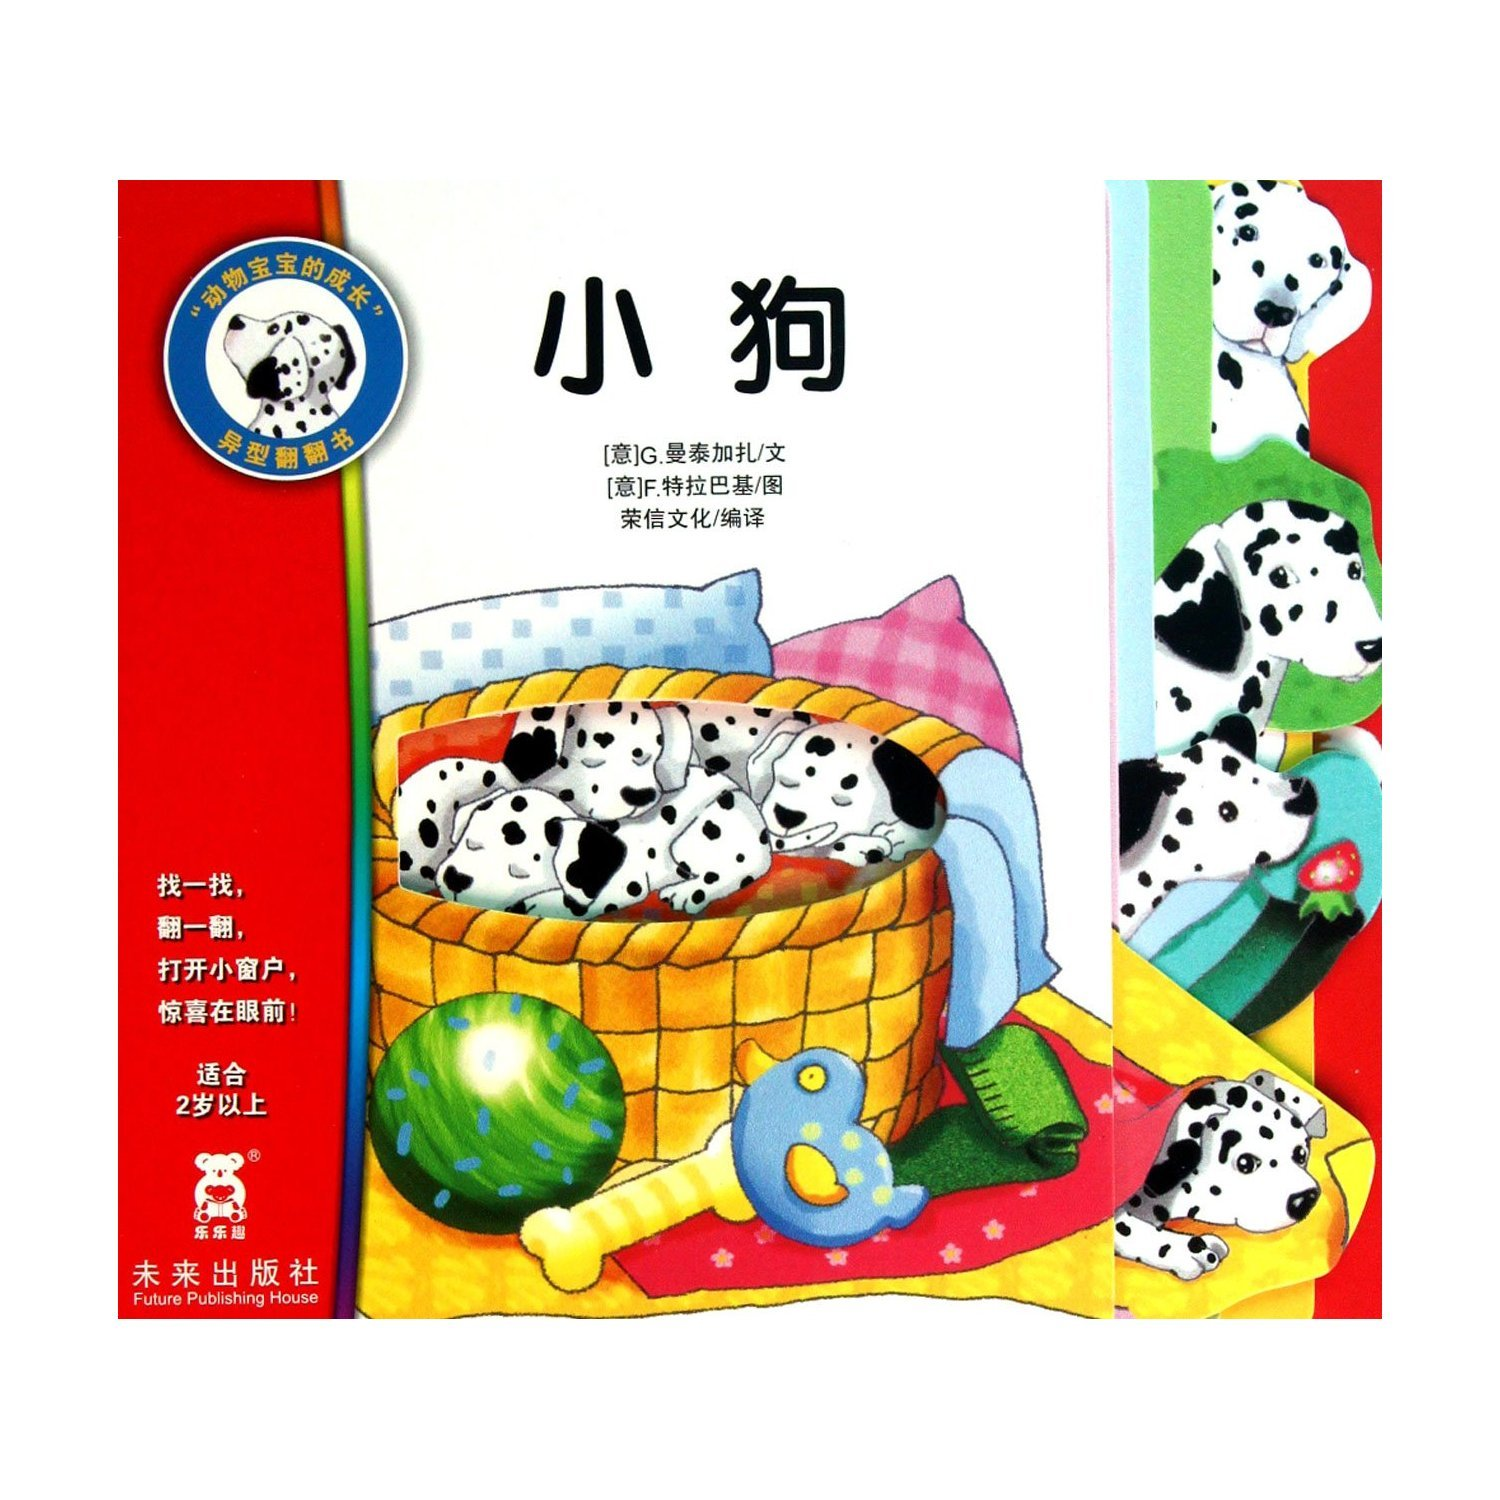 A Little Dog-Baby Animal Growth-Amazing Peekaboo-for Babies above 2 Years Old (Chinese Edition) PDF